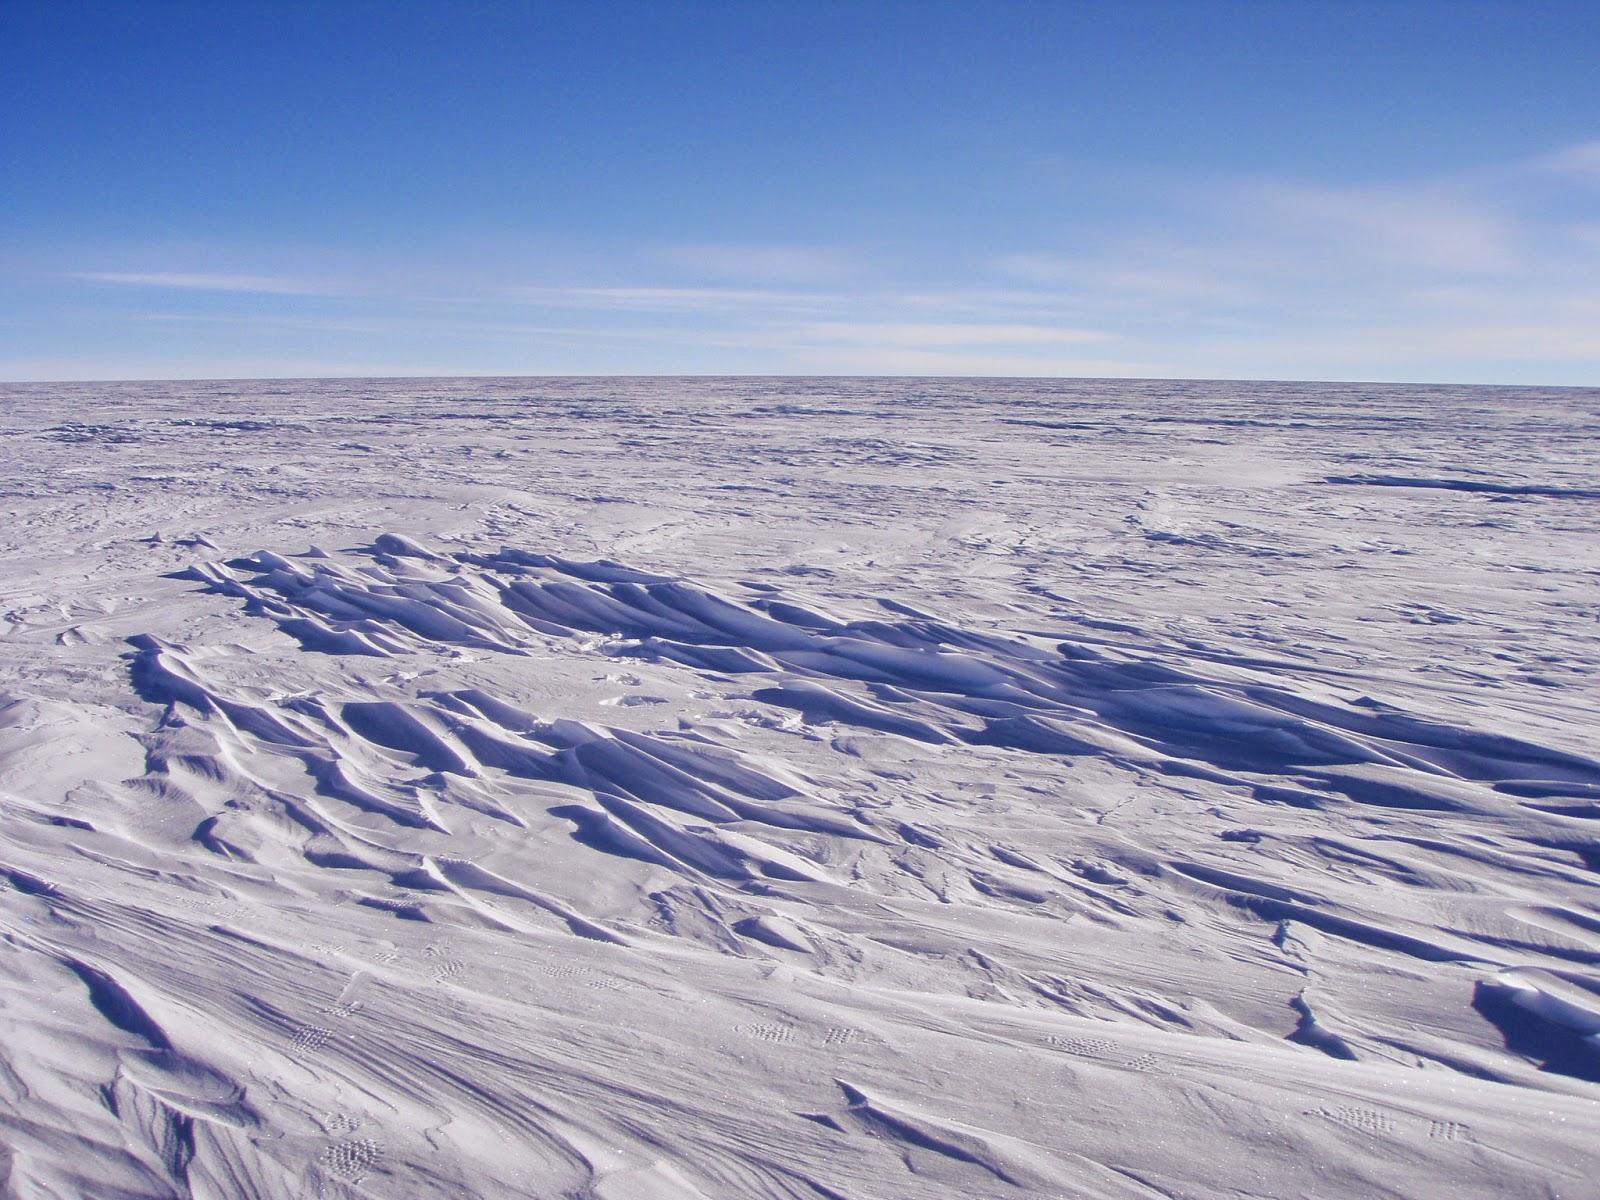 The+Coldest+Temperature+Ever+Recorded+On+Earth.JPG